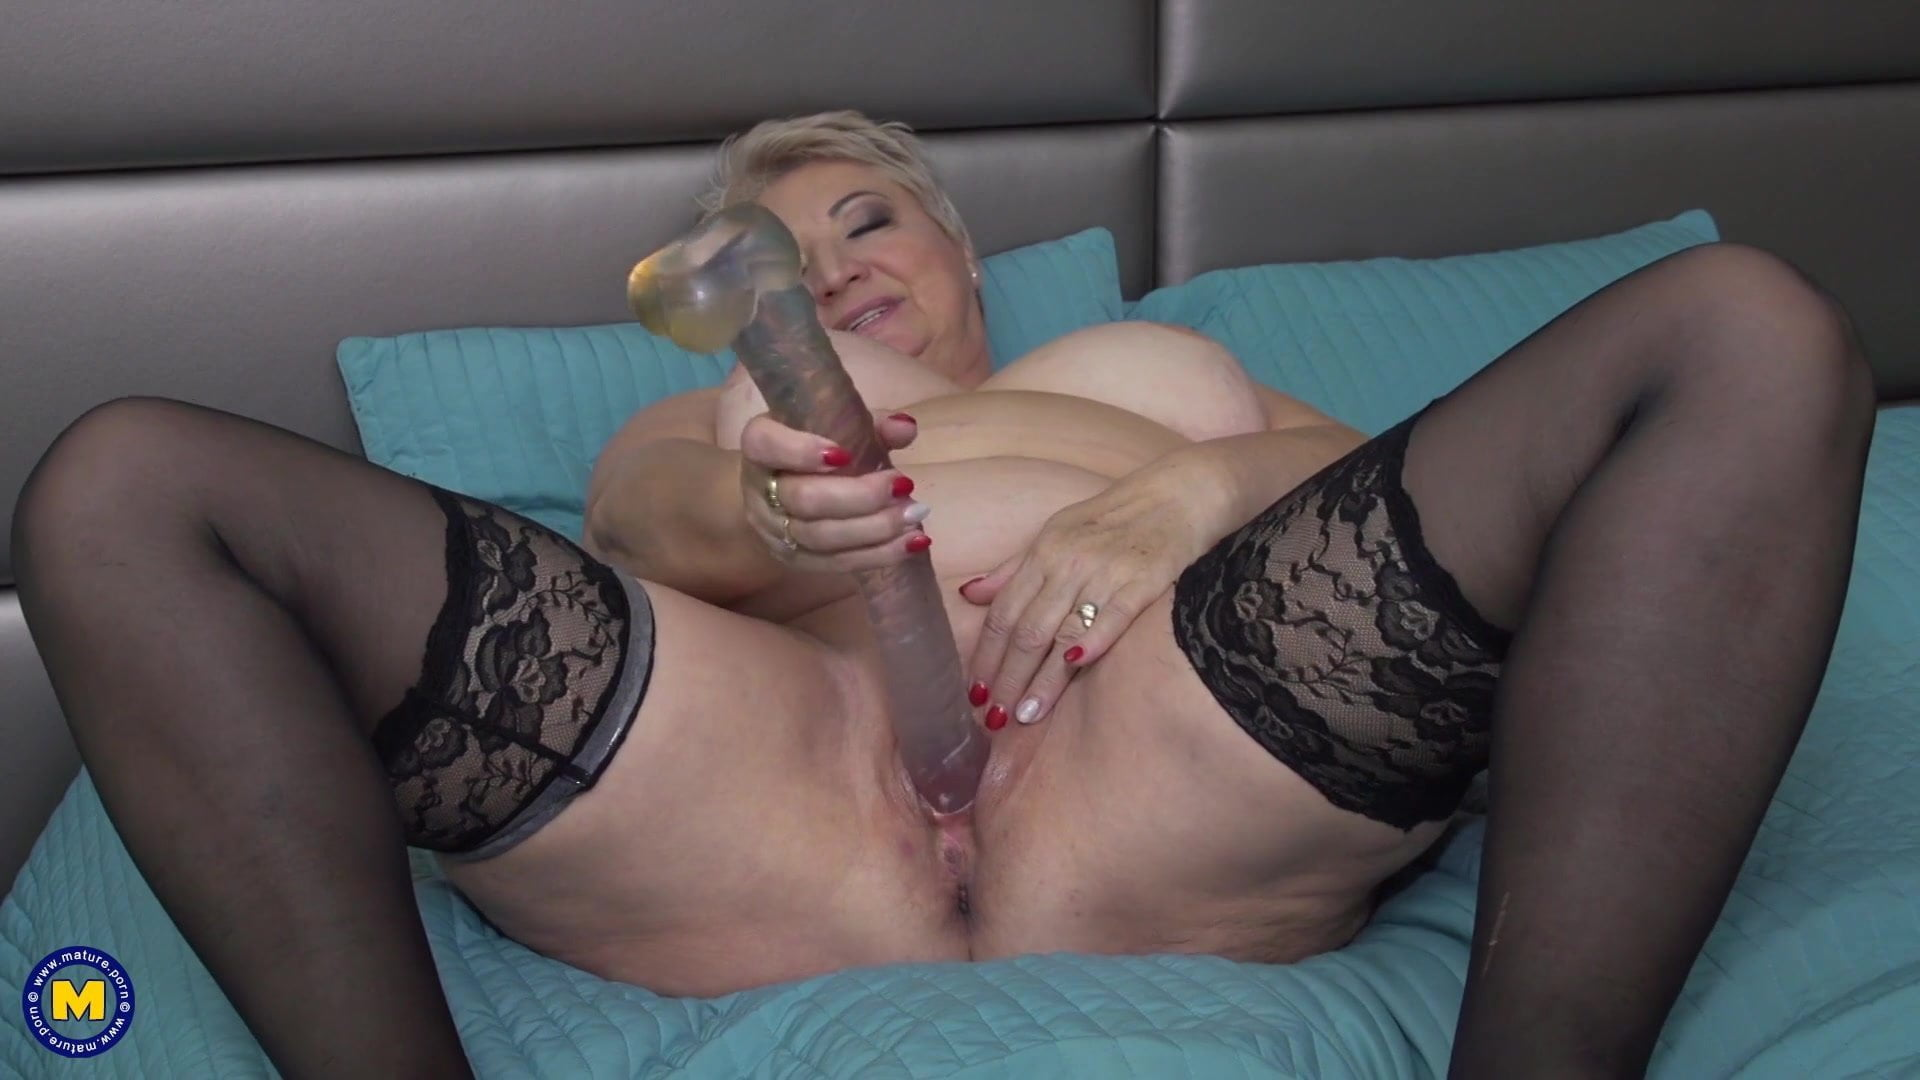 Granny hairy analed fuck clit by huge short hair dildo free porn